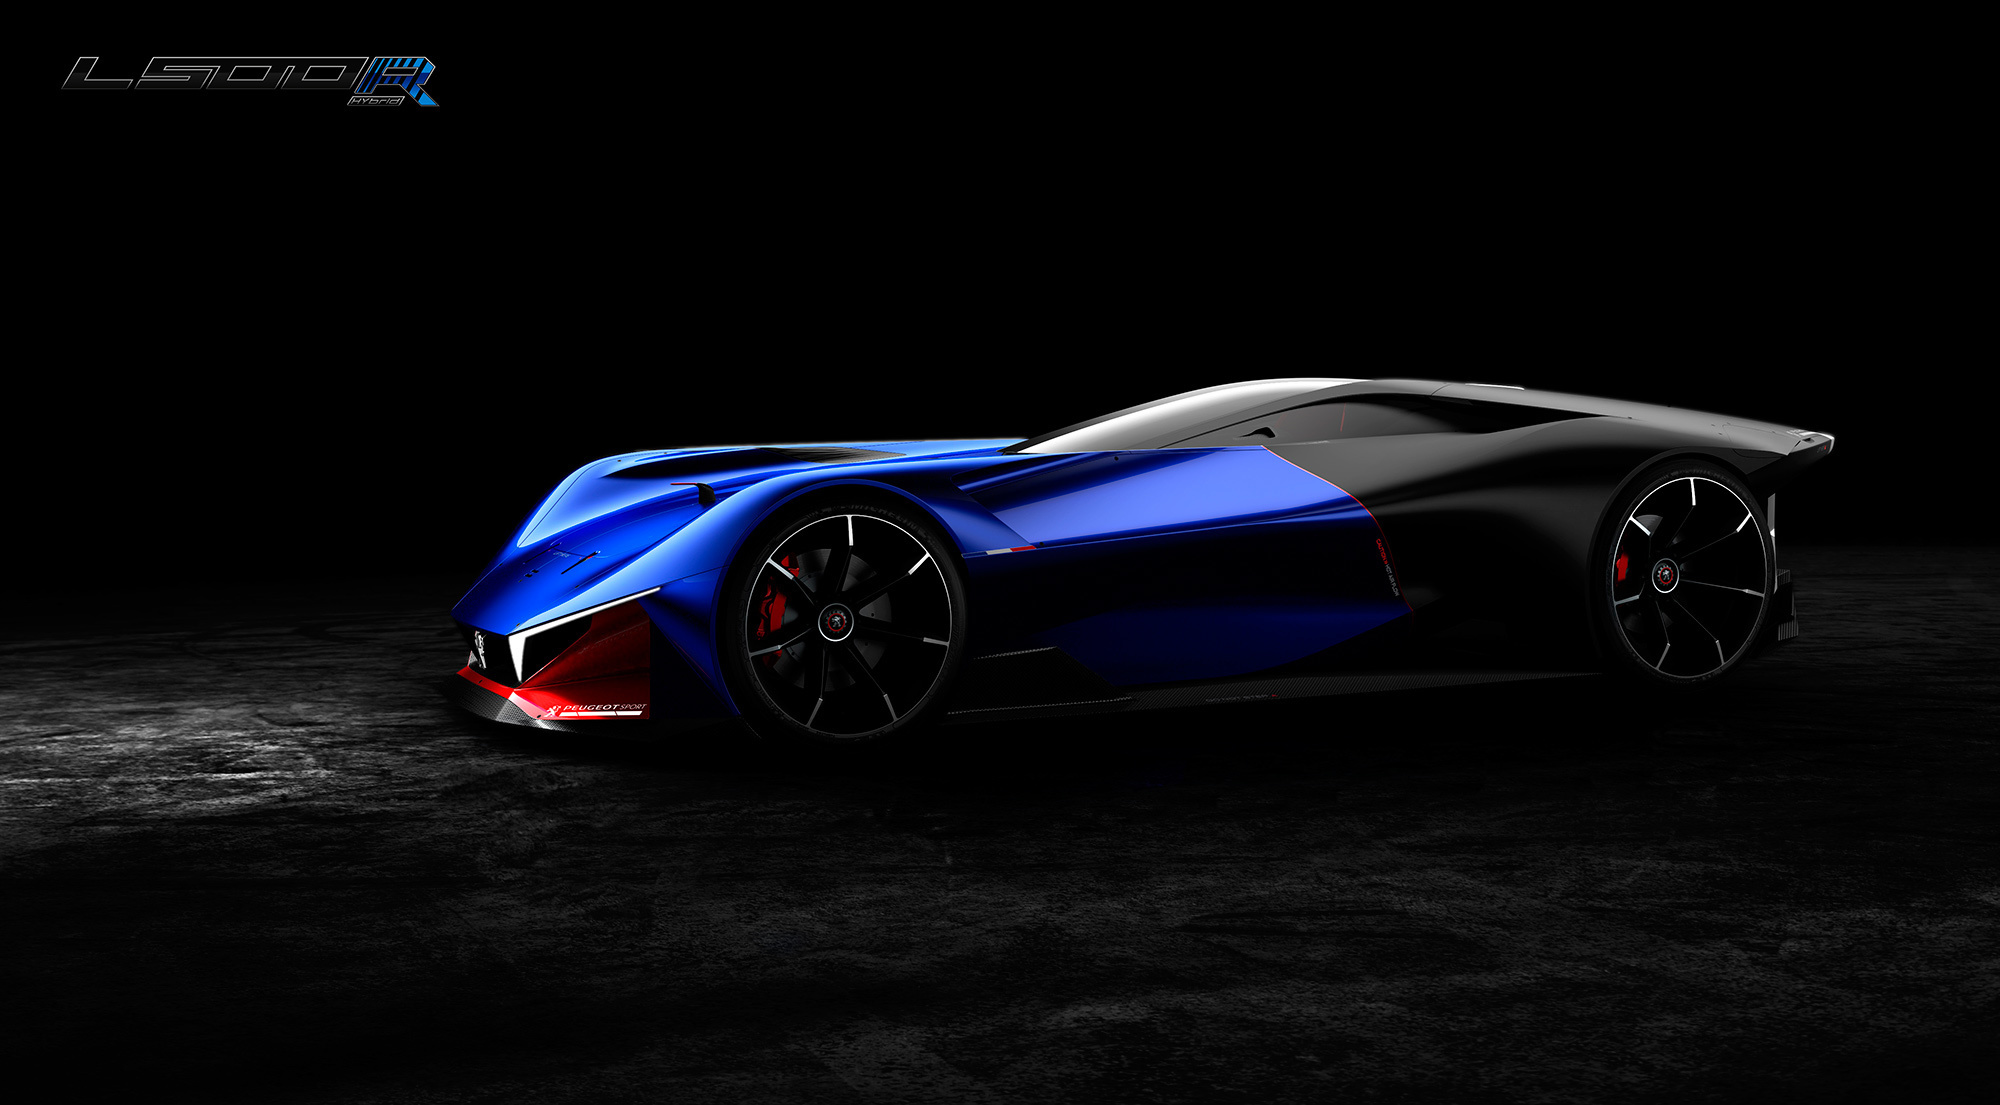 Peugeot L500 R HYbrid High Definition Wallpapers